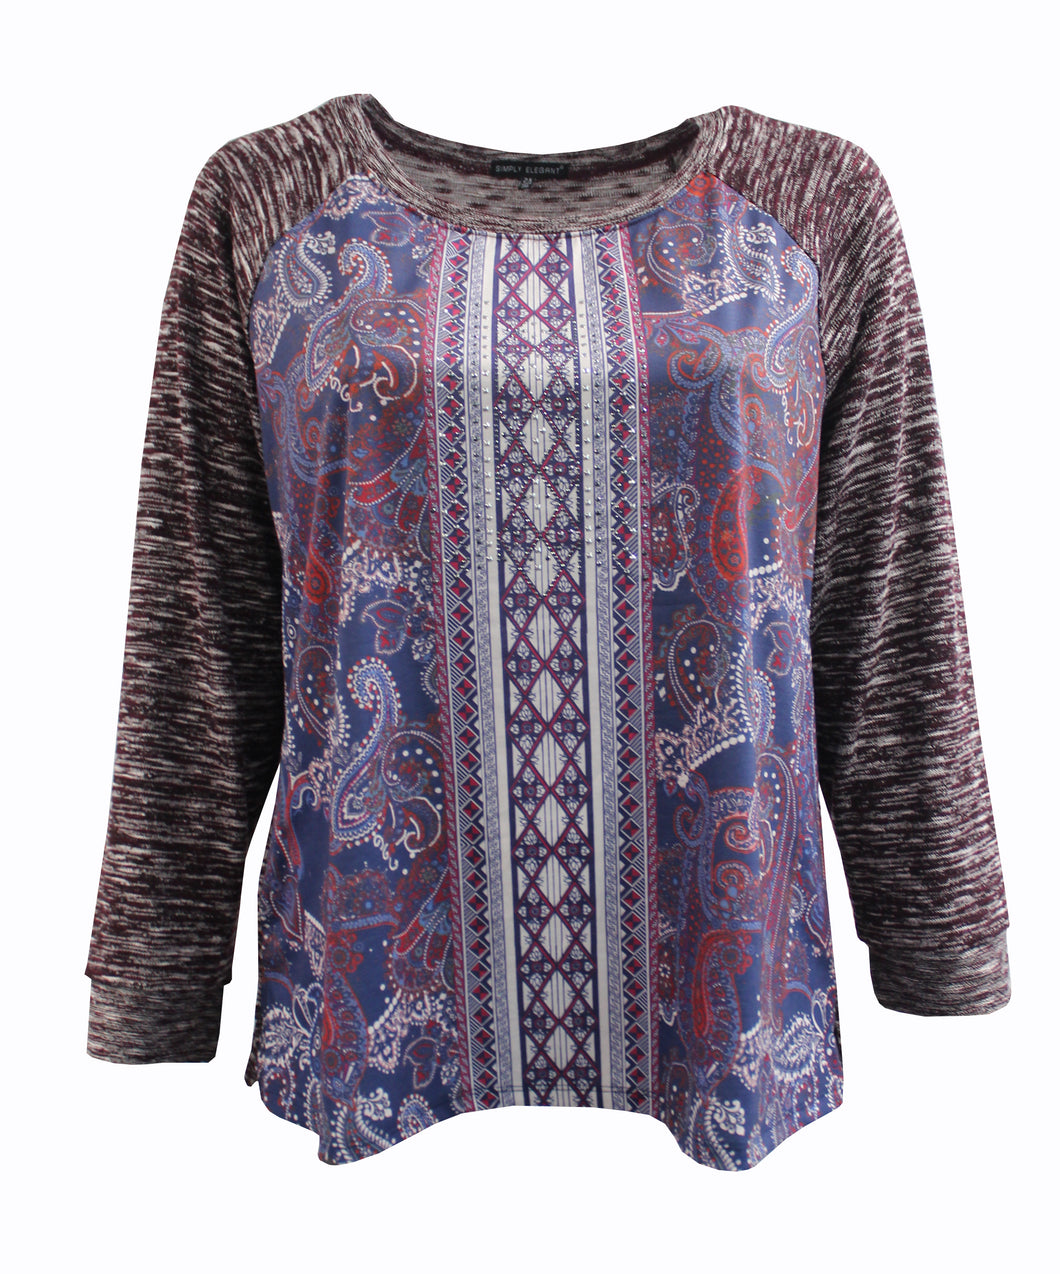 Multi-Color Paisley Sweater Knit with Burgundy Sleeves